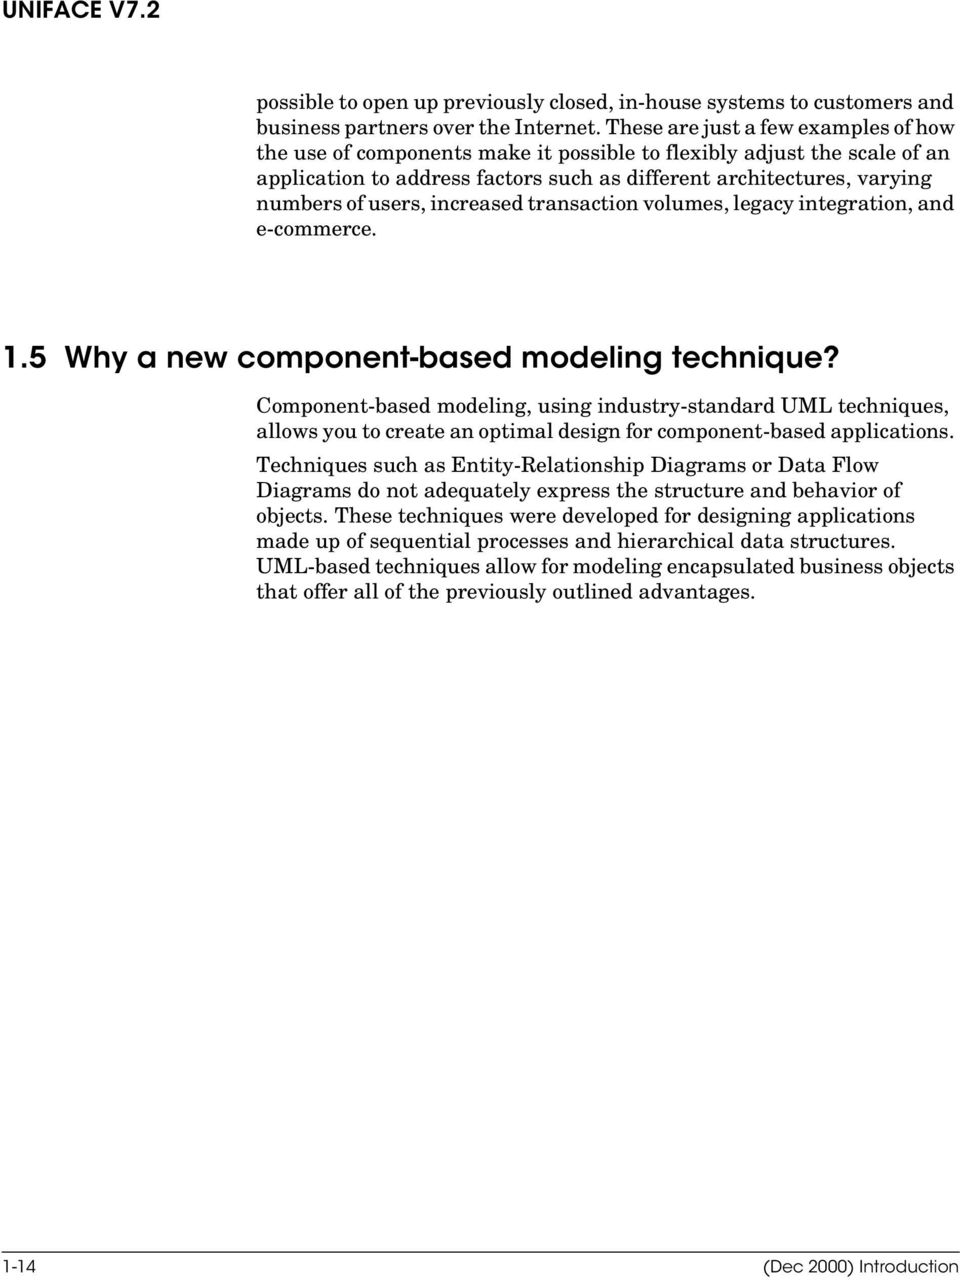 users, increased transaction volumes, legacy integration, and e-commerce. 1.5 Why a new component-based modeling technique?